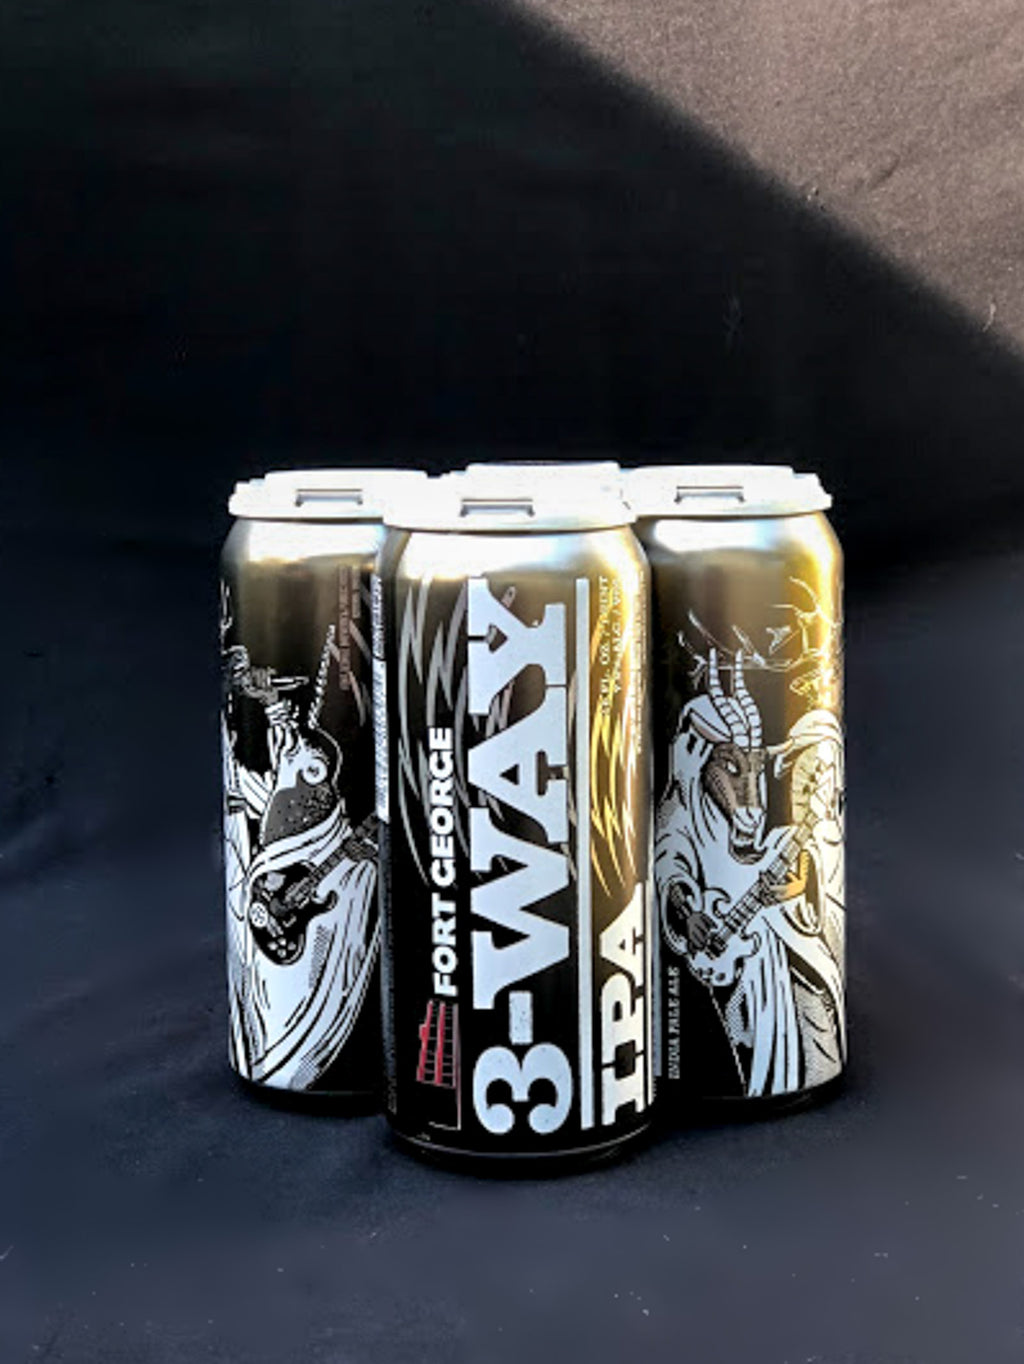 Buy the 3-Way IPA Online 4-pack 16oz cans